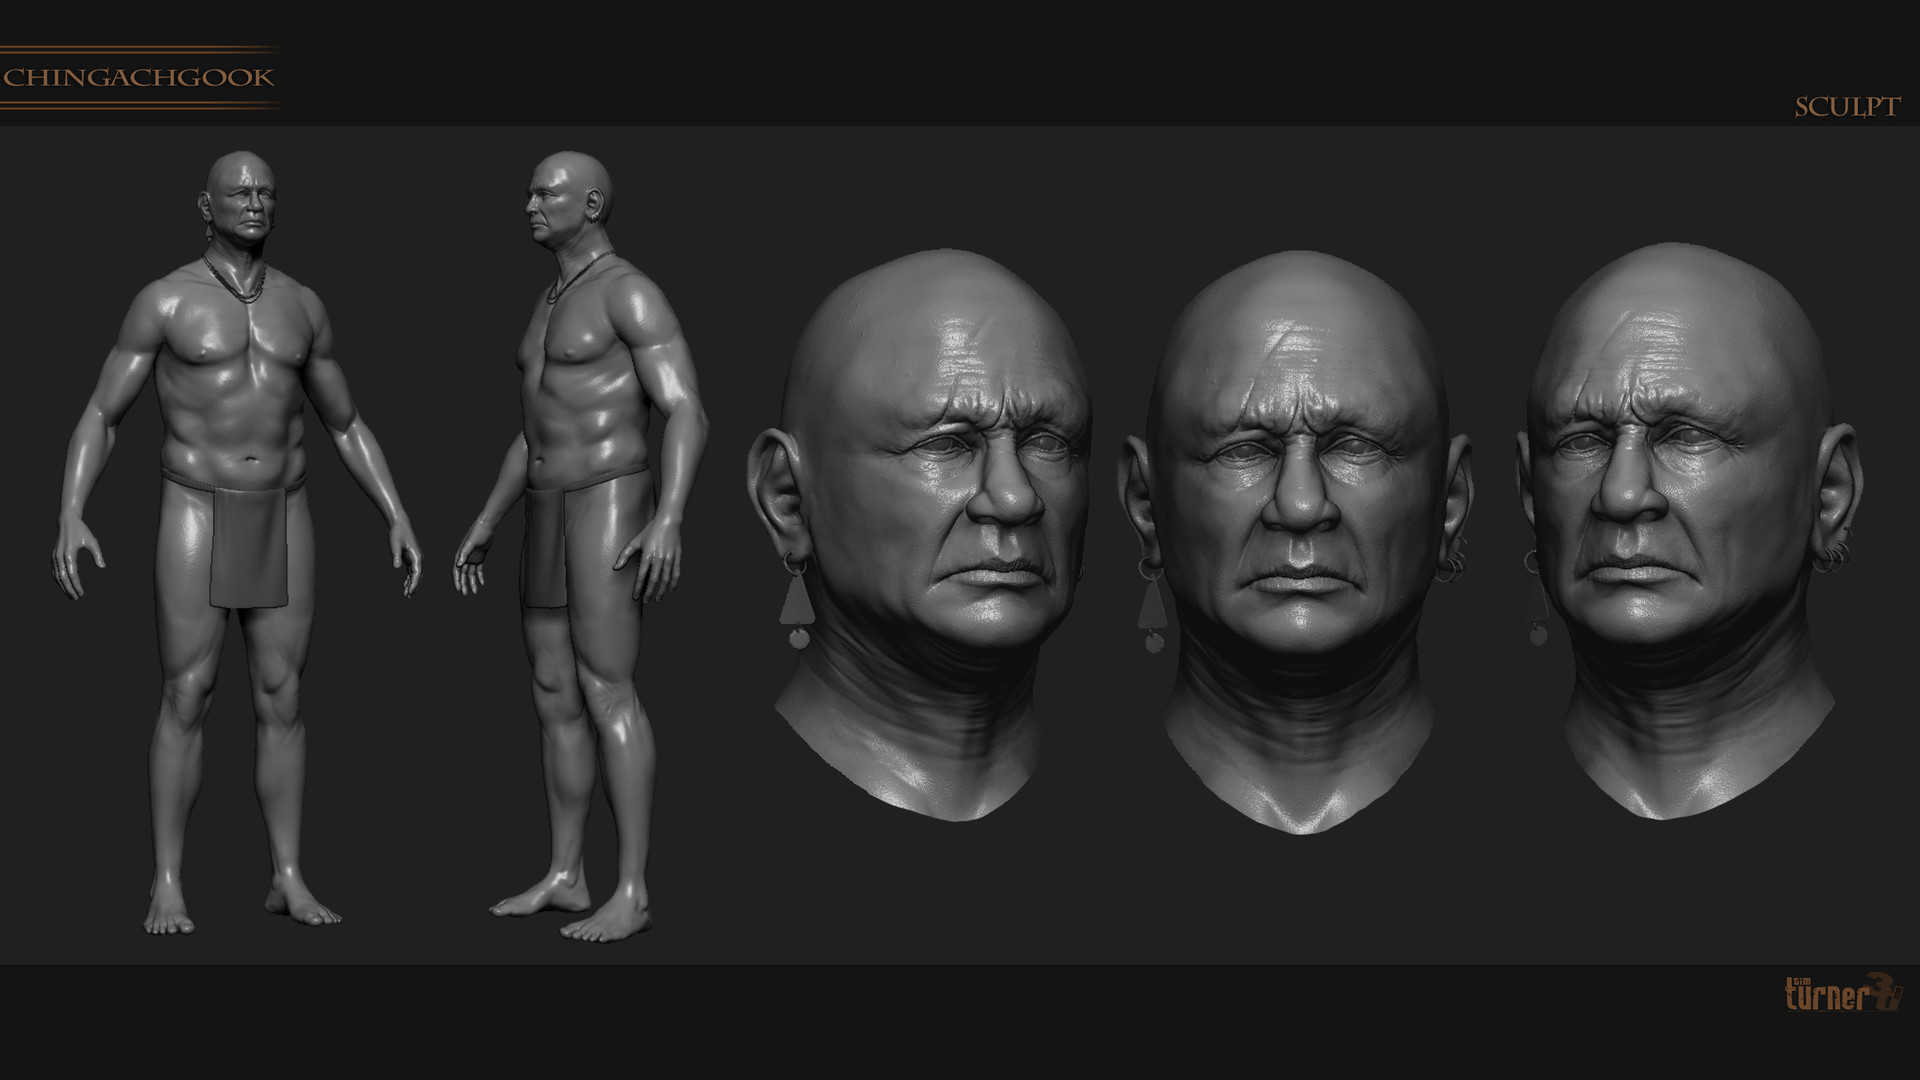 Tim turner 3d mohican sculpt